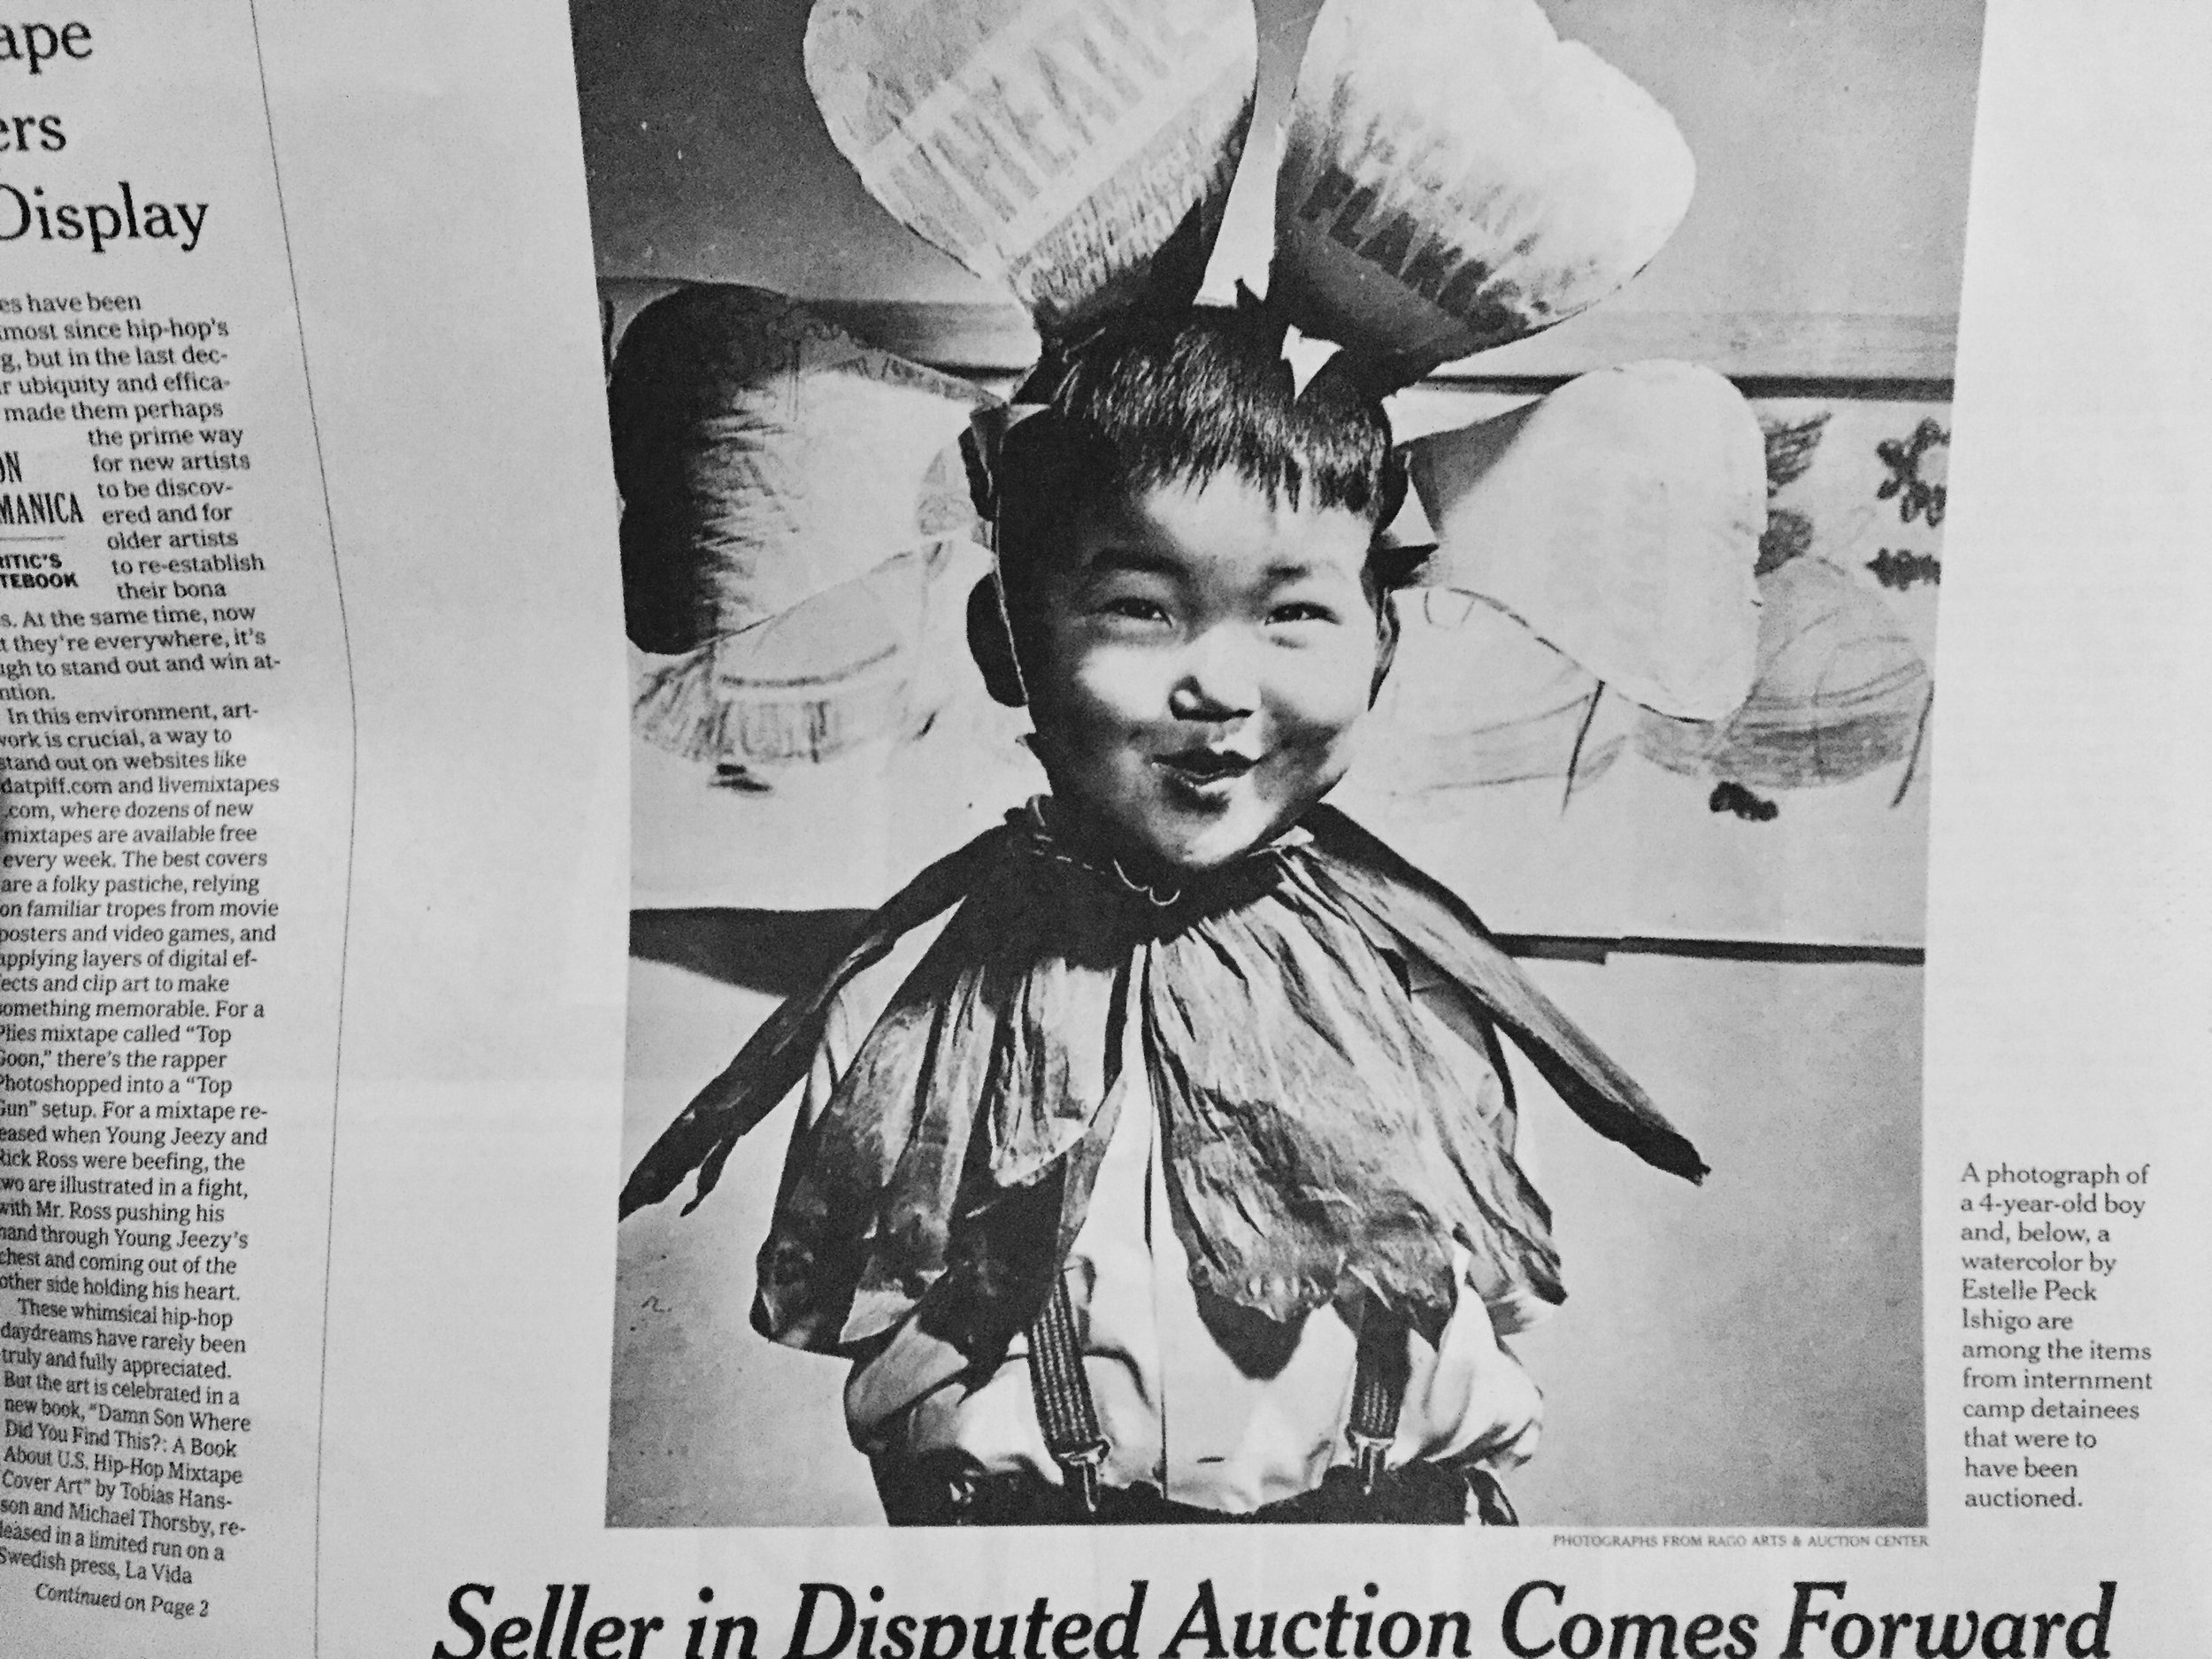 A young Bob Kaneko's photo made it in this New York Times article on the disputed  Eaton collection